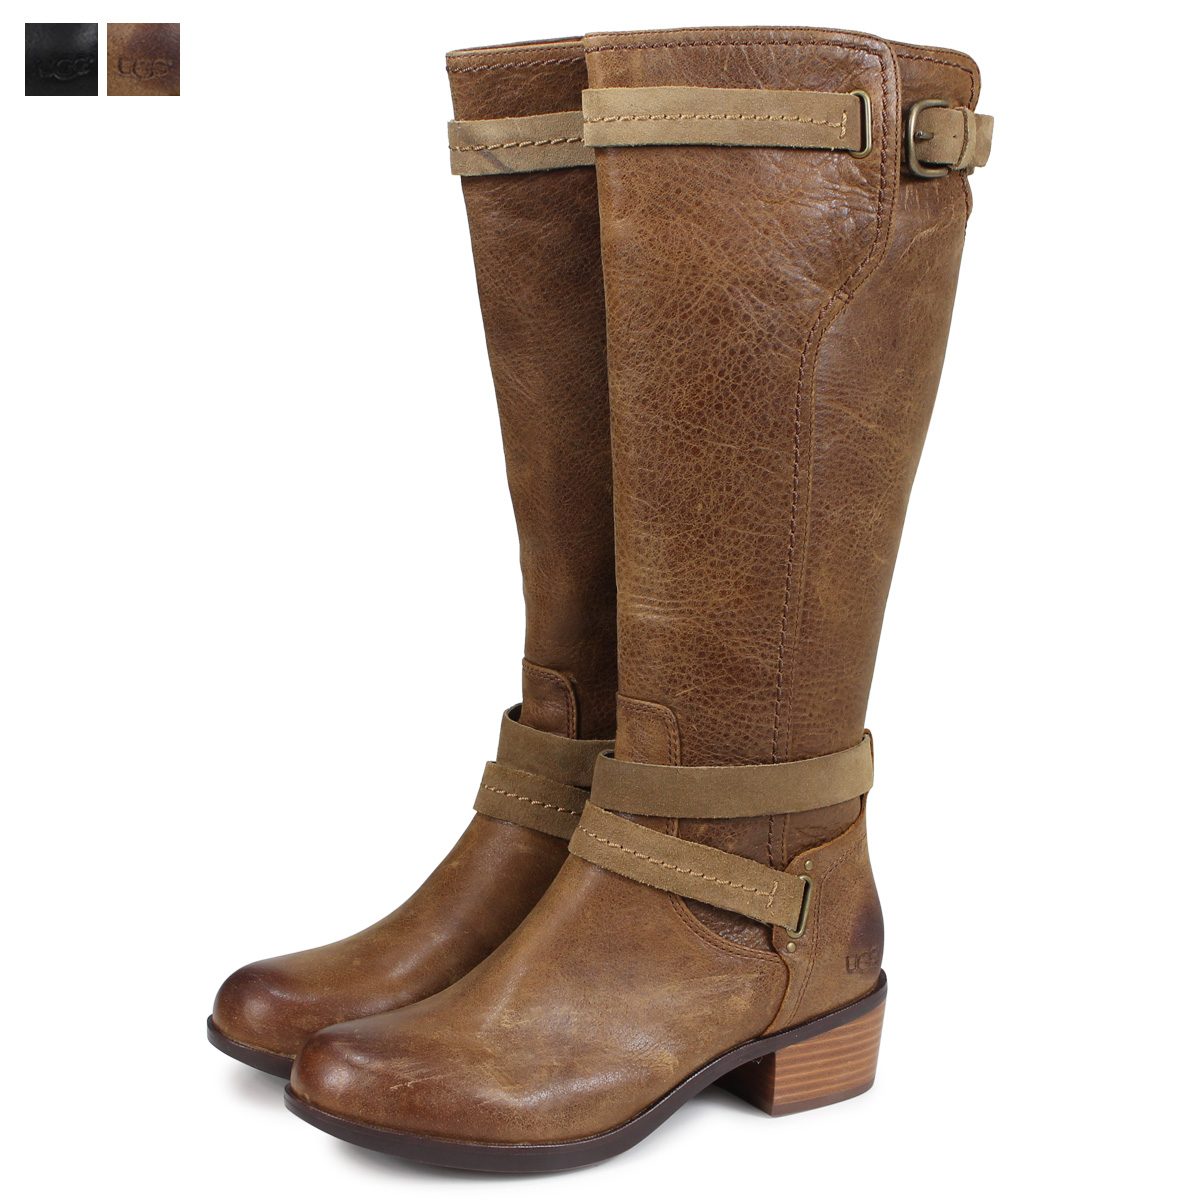 febf95dd3e8 Whats up Sports  Knee high boots WOMENS DARCIE 1004172 Sheepskin ...